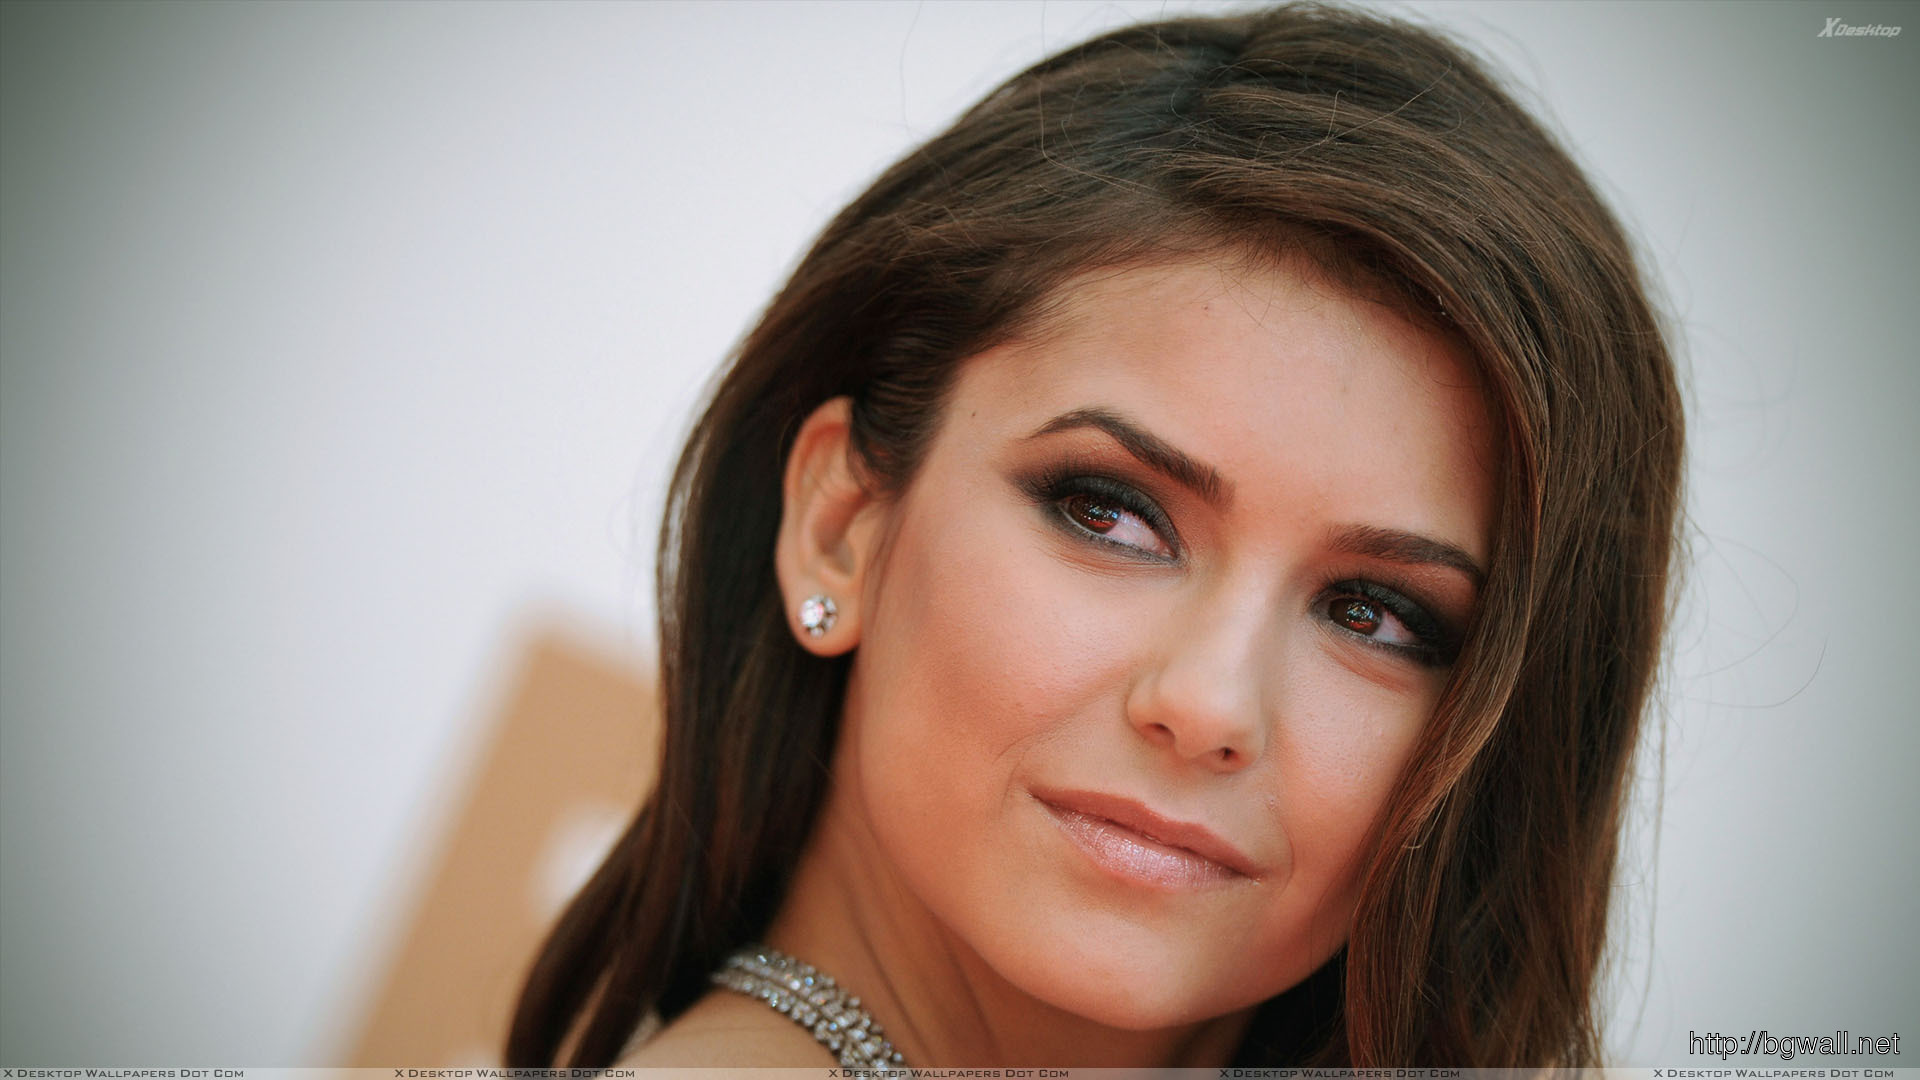 Cute Face Nina Dobrev Wallpaper